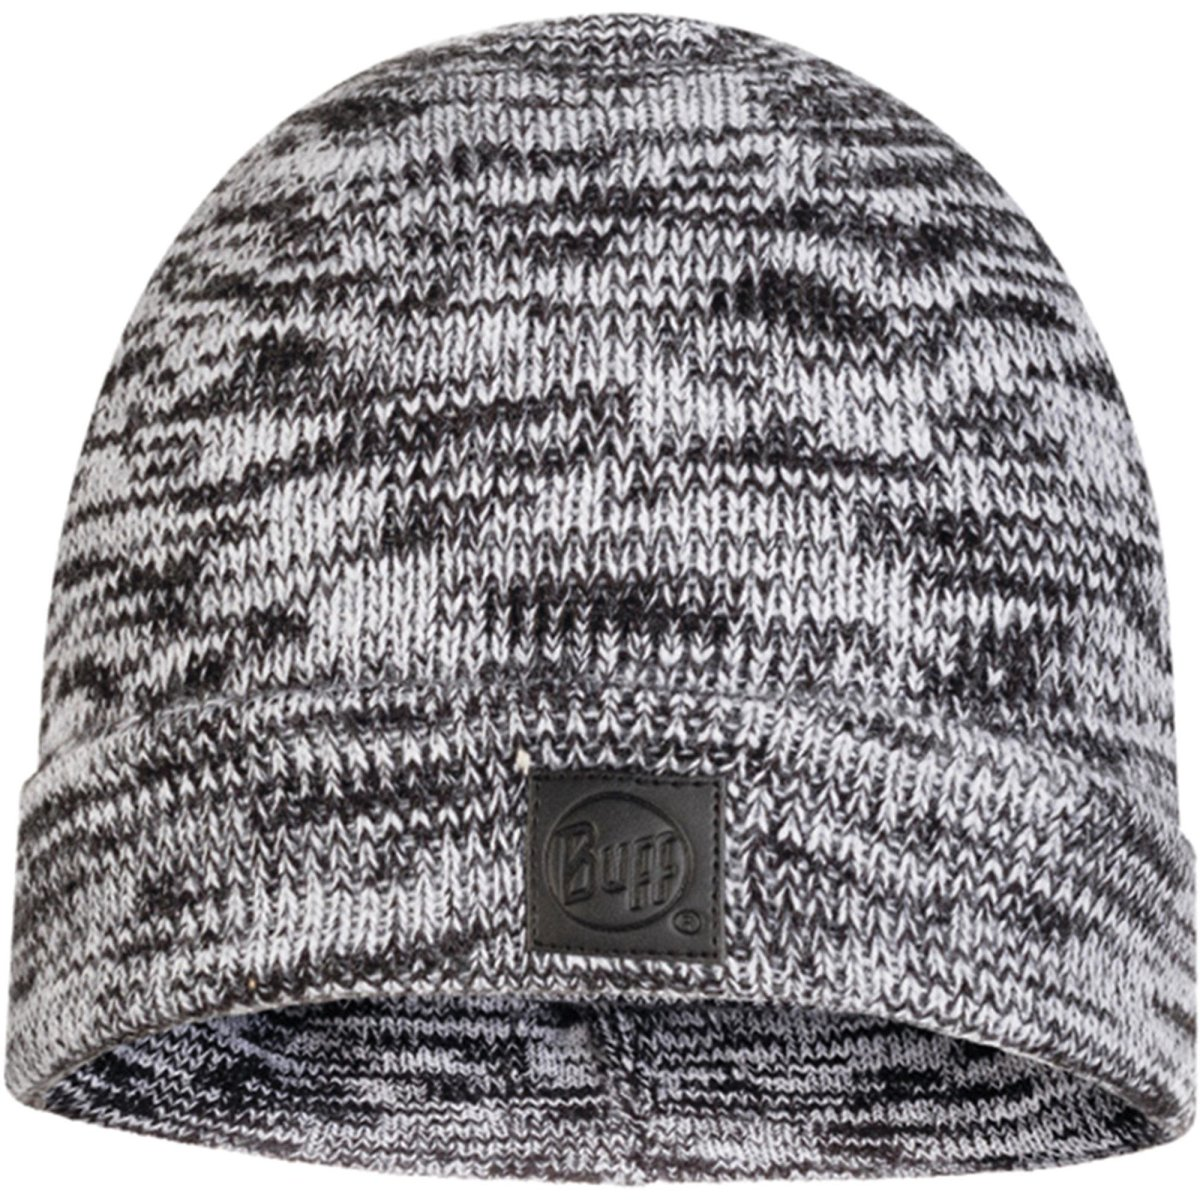 Шапка Buff Knitted Hat Edik multi 3 Knitted Hat BU 120831.555.10.00